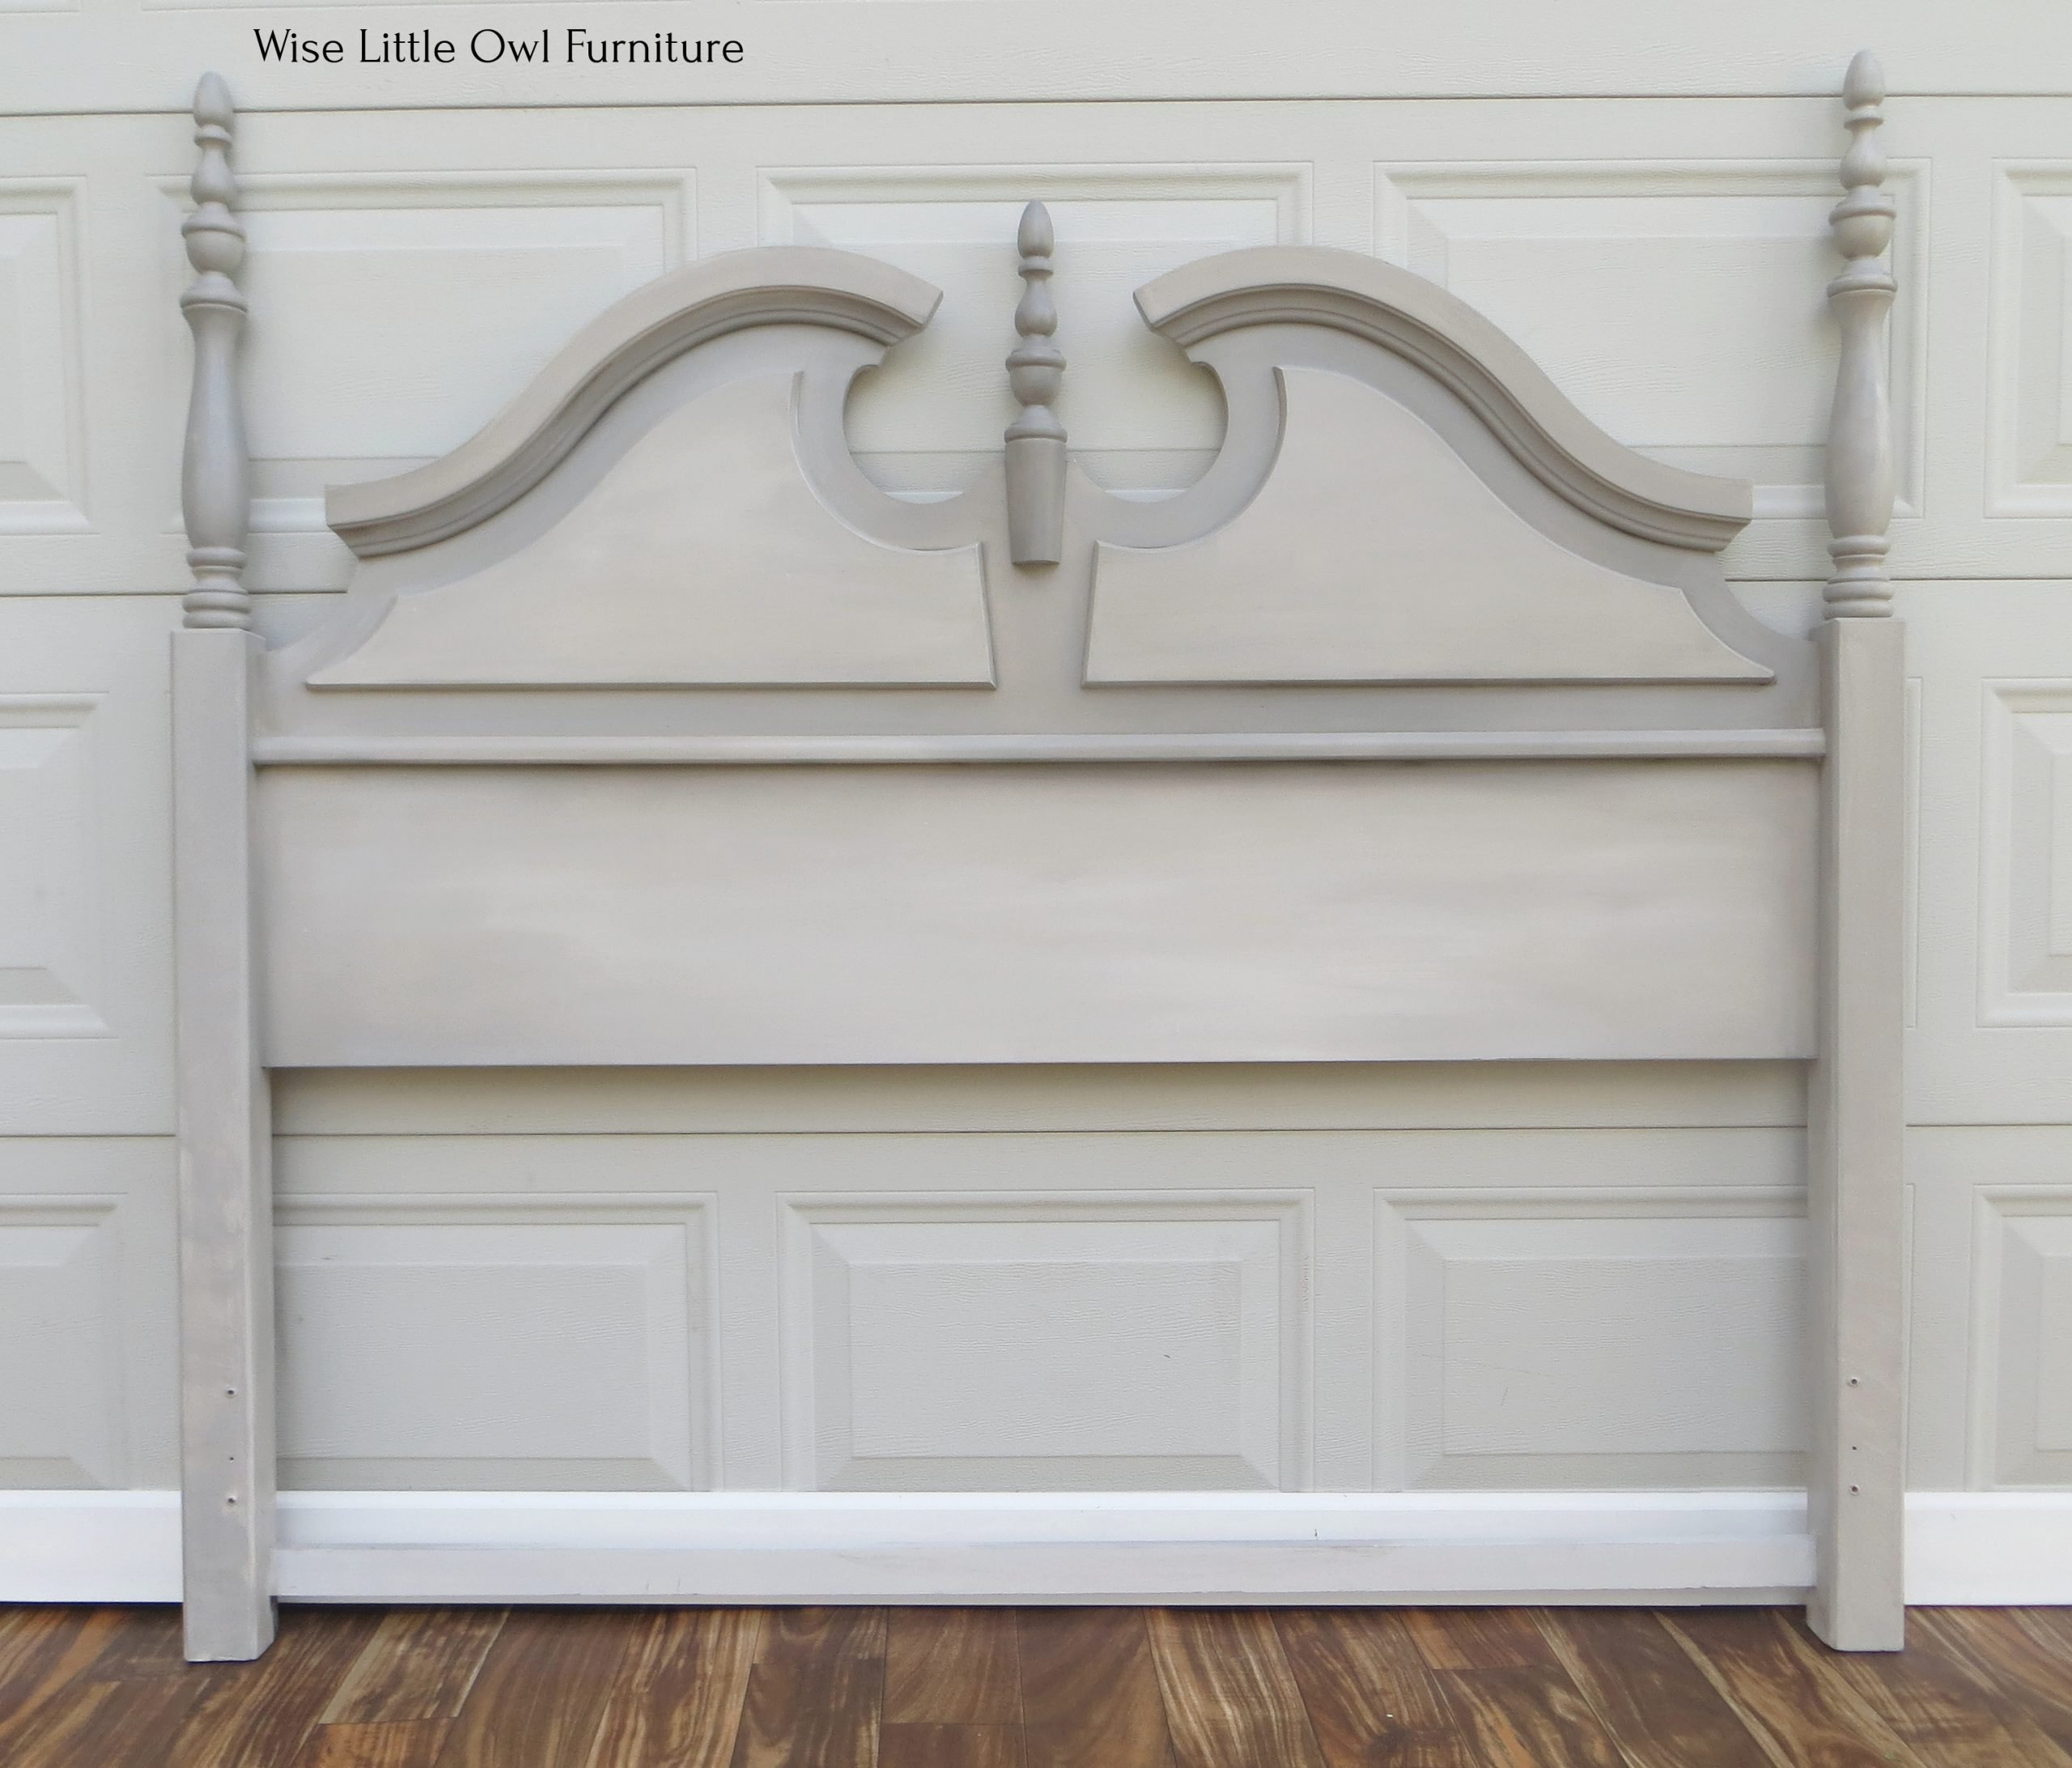 Painting A Headboard Wise Little Owl Furniture